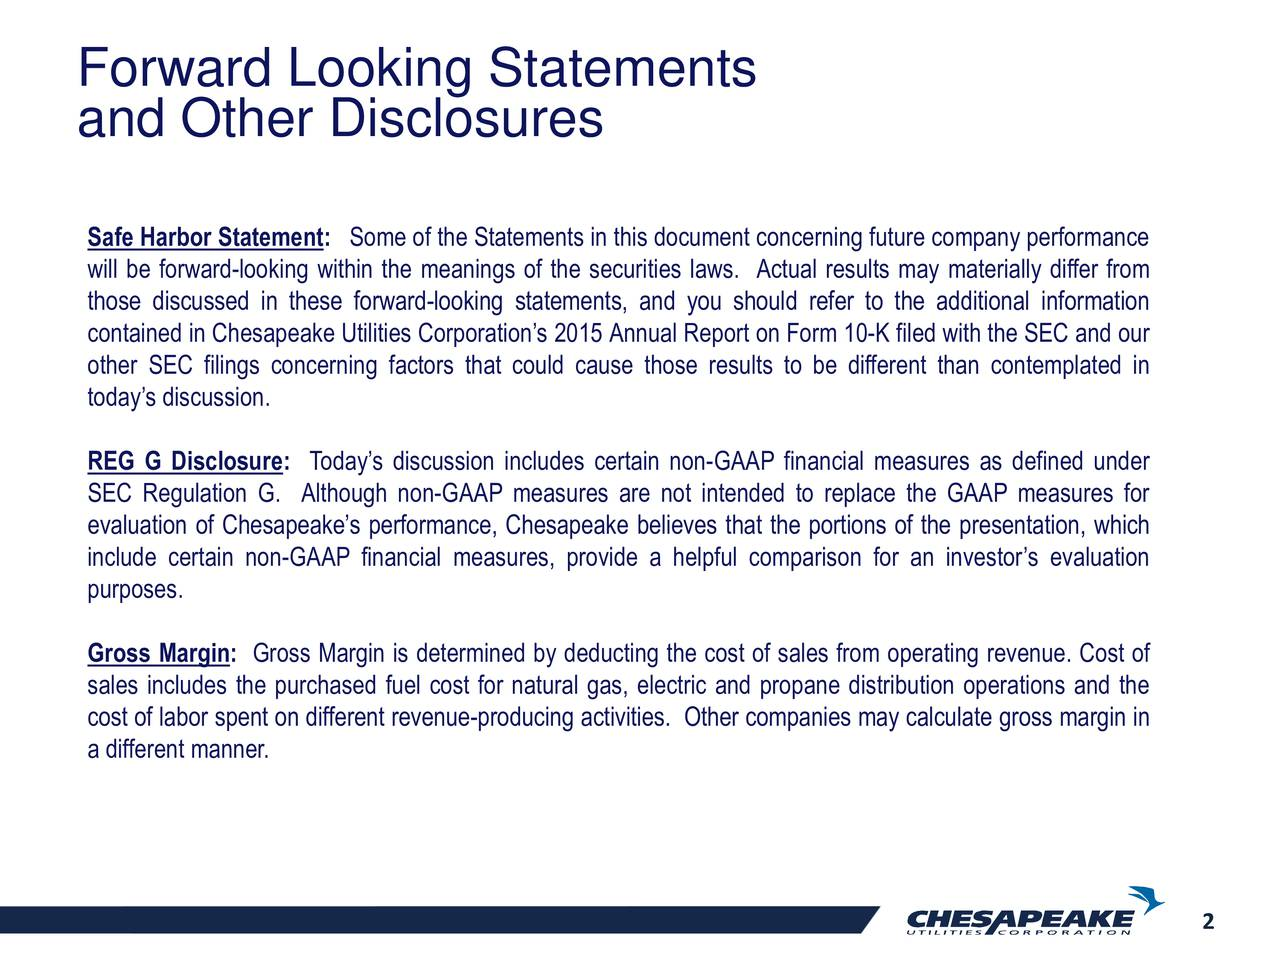 and Other Disclosures Safe Harbor Statement: Some of the Statements in this document concerning future company performance will be forward-looking within the meanings of the securities laws. Actual results may materially differ from those discussed in these forward-looking statements, and you should refer to the additional information contained in Chesapeake Utilities Corporations 2015 Annual Report on Form 10-K filed with the SEC and our other SEC filings concerning factors that could cause those results to be different than contemplated in todays discussion. REG G Disclosure: Todays discussion includes certain non-GAAP financial measures as defined under SEC Regulation G. Although non-GAAP measures are not intended to replace the GAAP measures for evaluation of Chesapeakes performance, Chesapeake believes that the portions of the presentation, which include certain non-GAAP financial measures, provide a helpful comparison for an investors evaluation purposes. Gross Margin: Gross Margin is determined by deducting the cost of sales from operating revenue. Cost of sales includes the purchased fuel cost for natural gas, electric and propane distribution operations and the cost of labor spent on different revenue-producing activities. Other companies may calculate gross margin in a different manner. 2